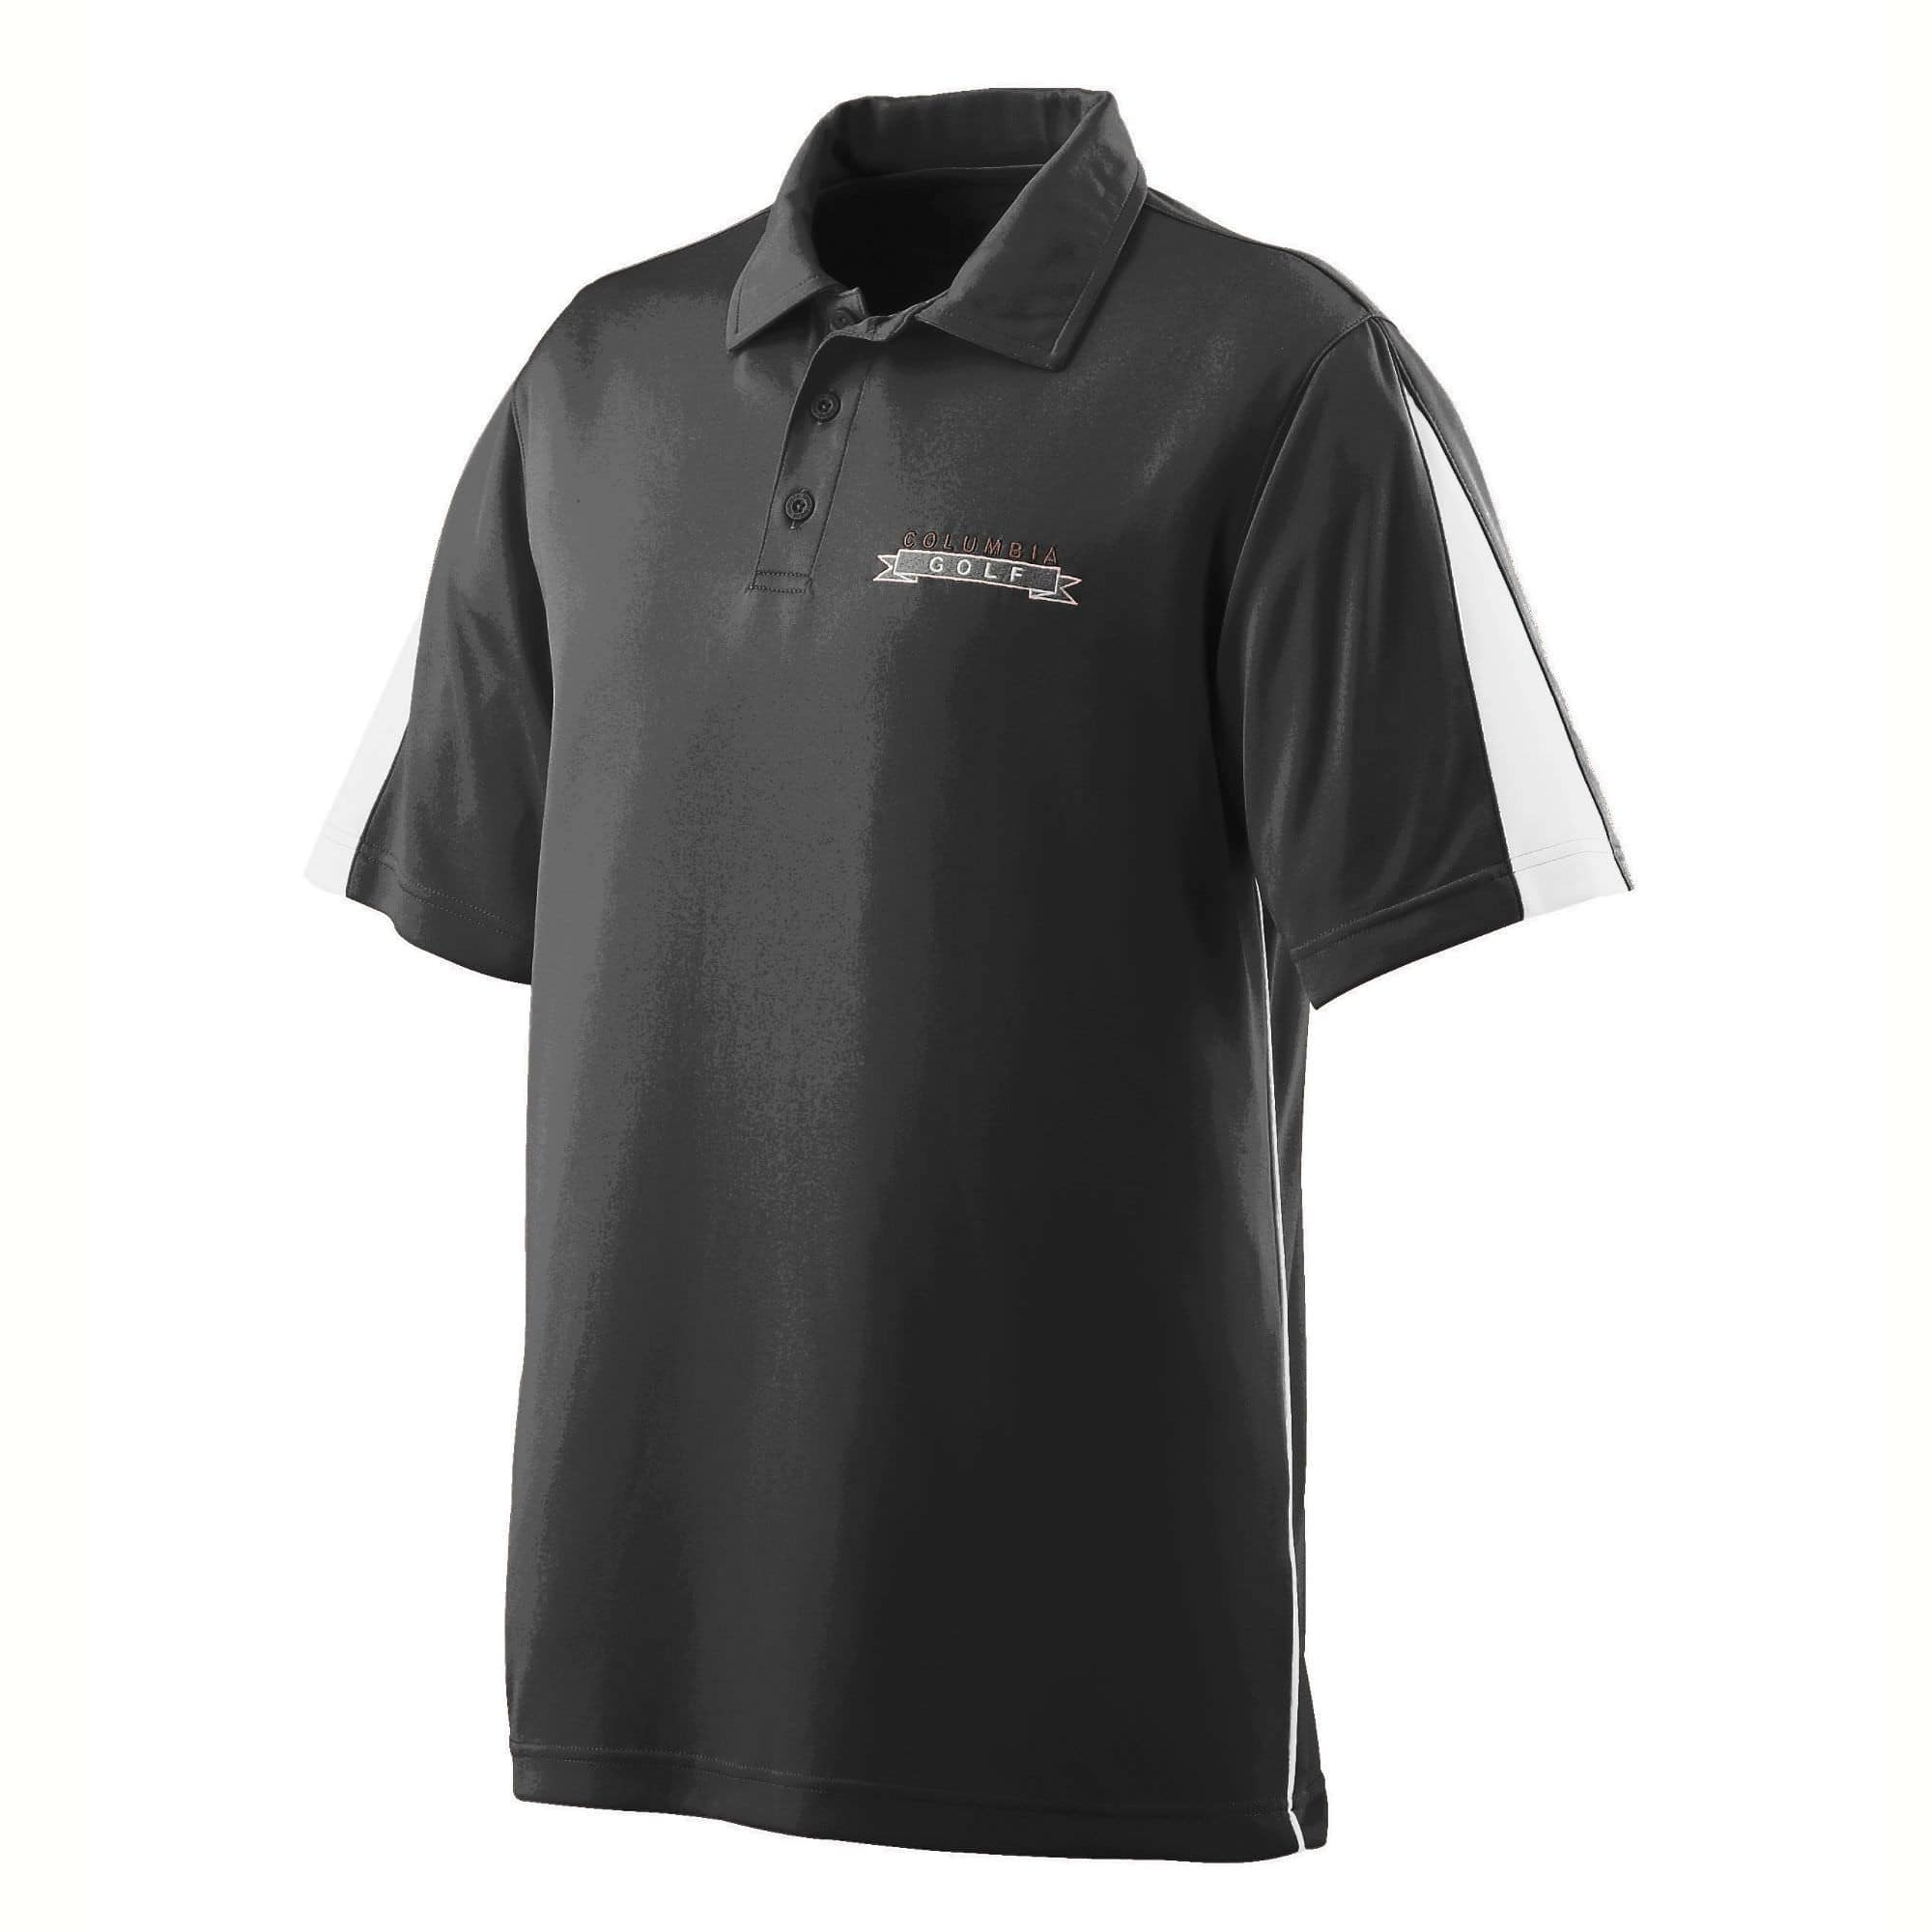 Augusta Active: Poly Spandex Polo $5, Men's Wicking Duo Knit Game Shorts $5, Revolution Jacket $8, Women's Synergy Pullover $7, More + free shipping